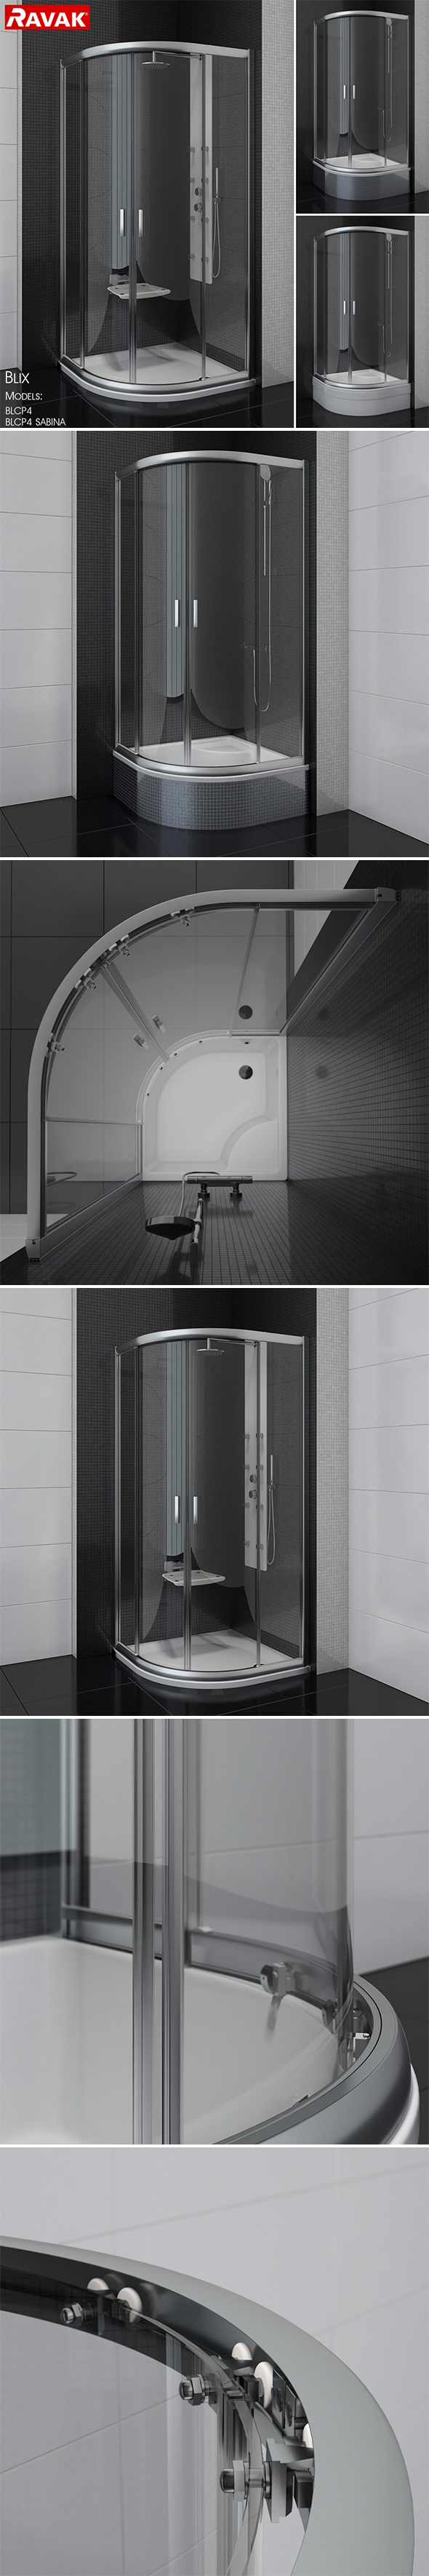 Semicircular shower enclosures Ravak Blix - 3DOcean Item for Sale